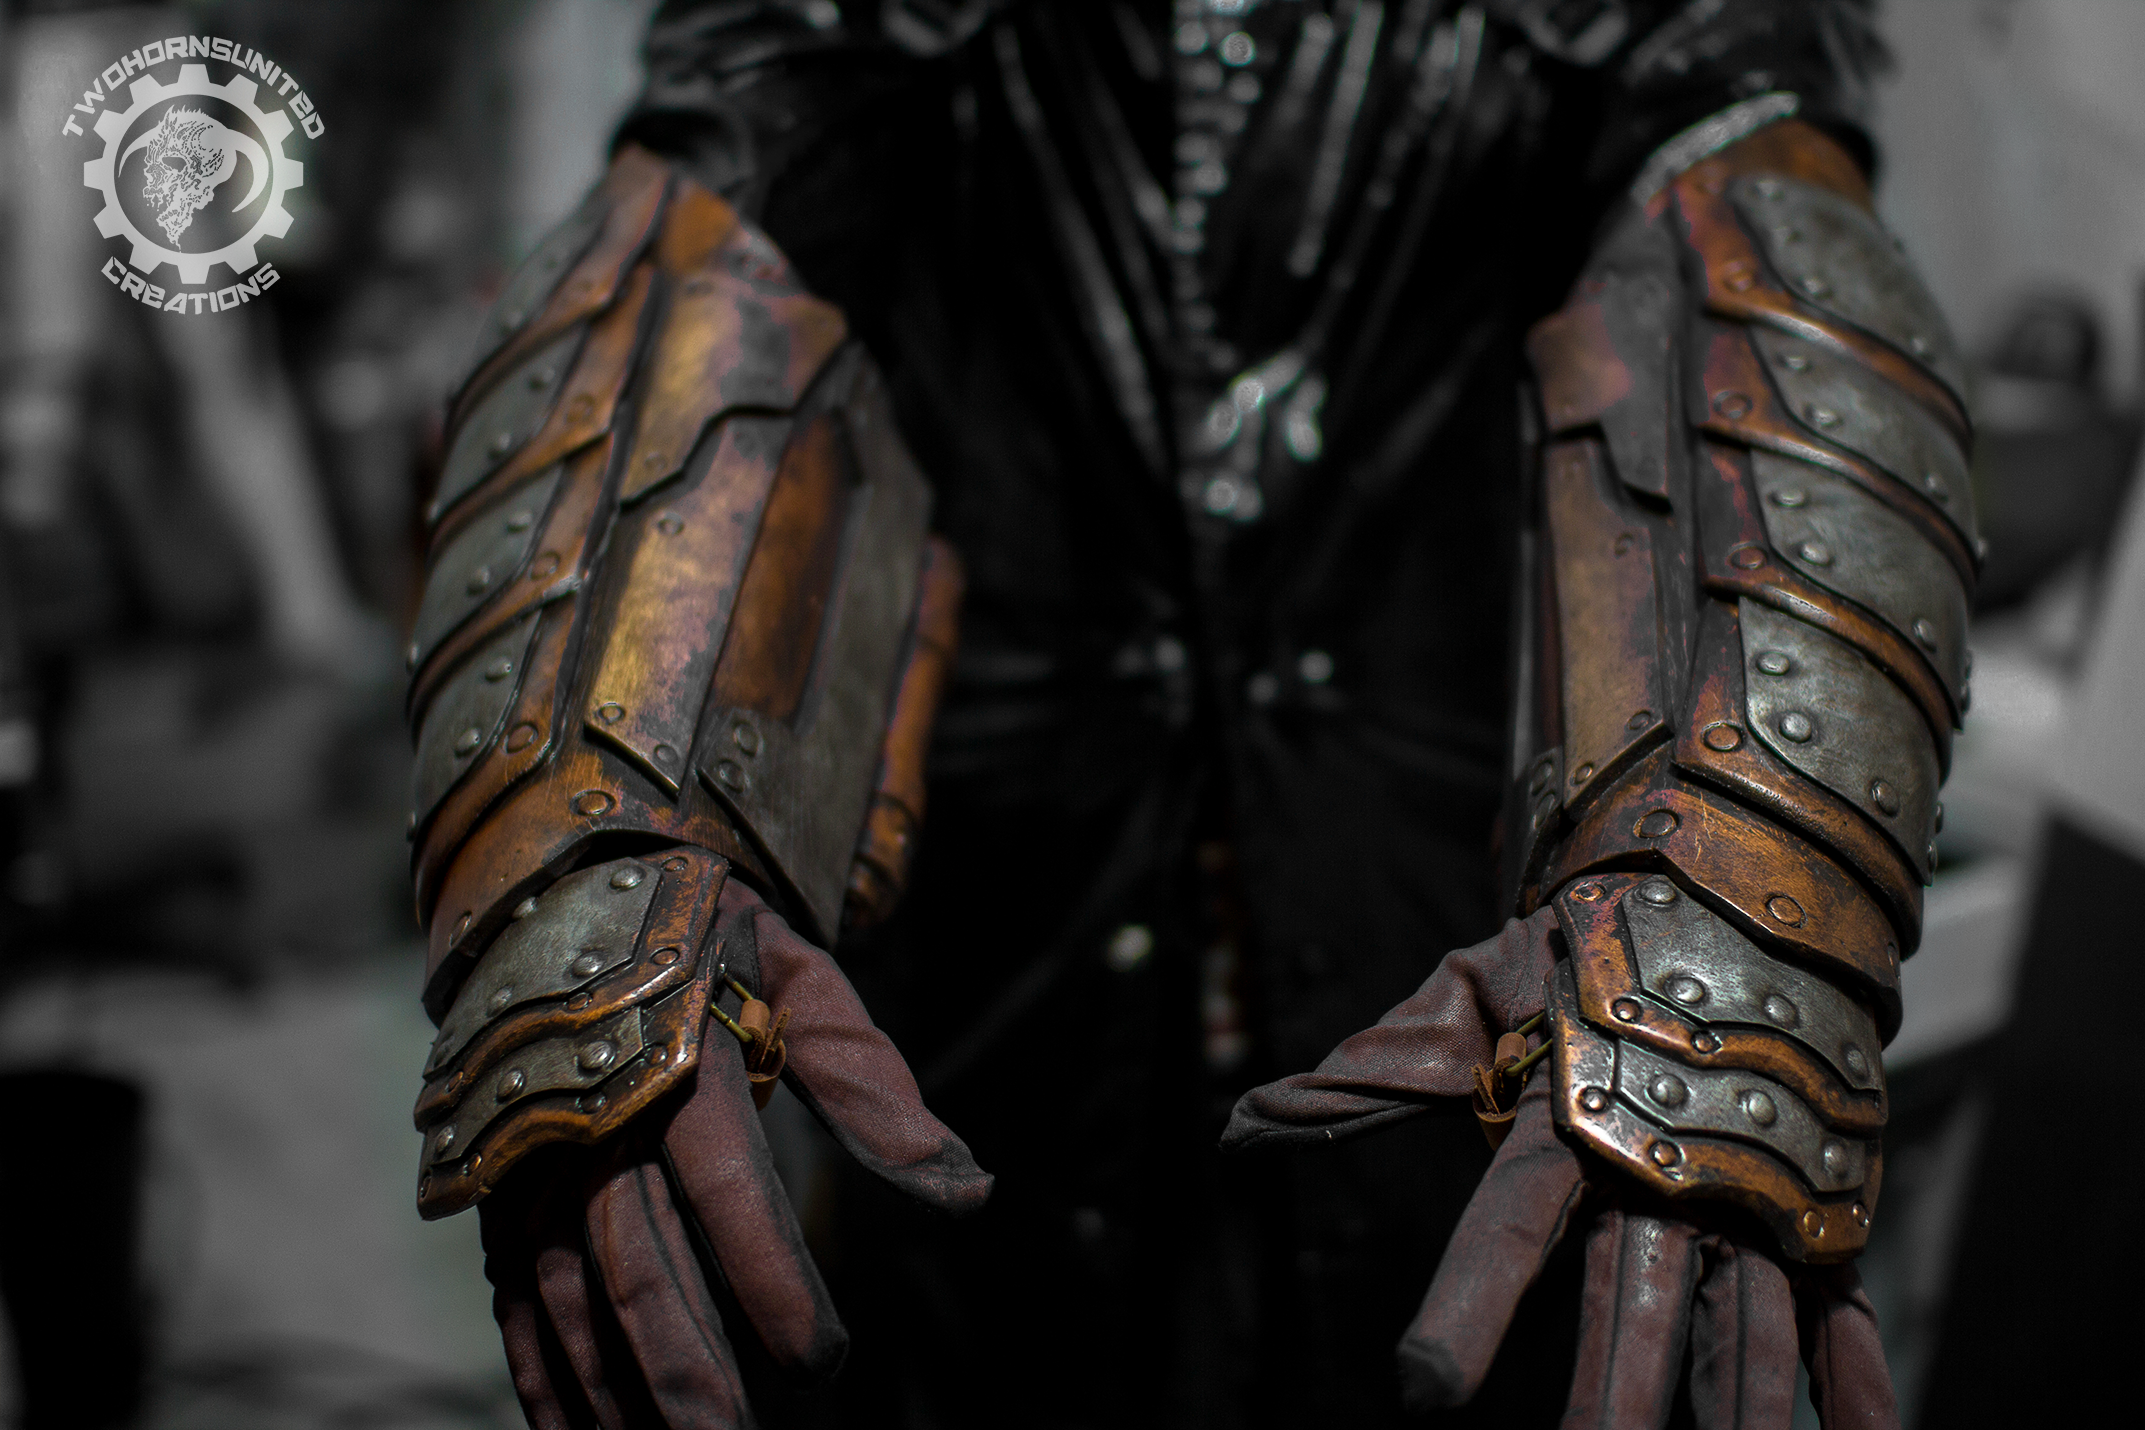 Gauntlets of the steam knight by TwoHornsUnited